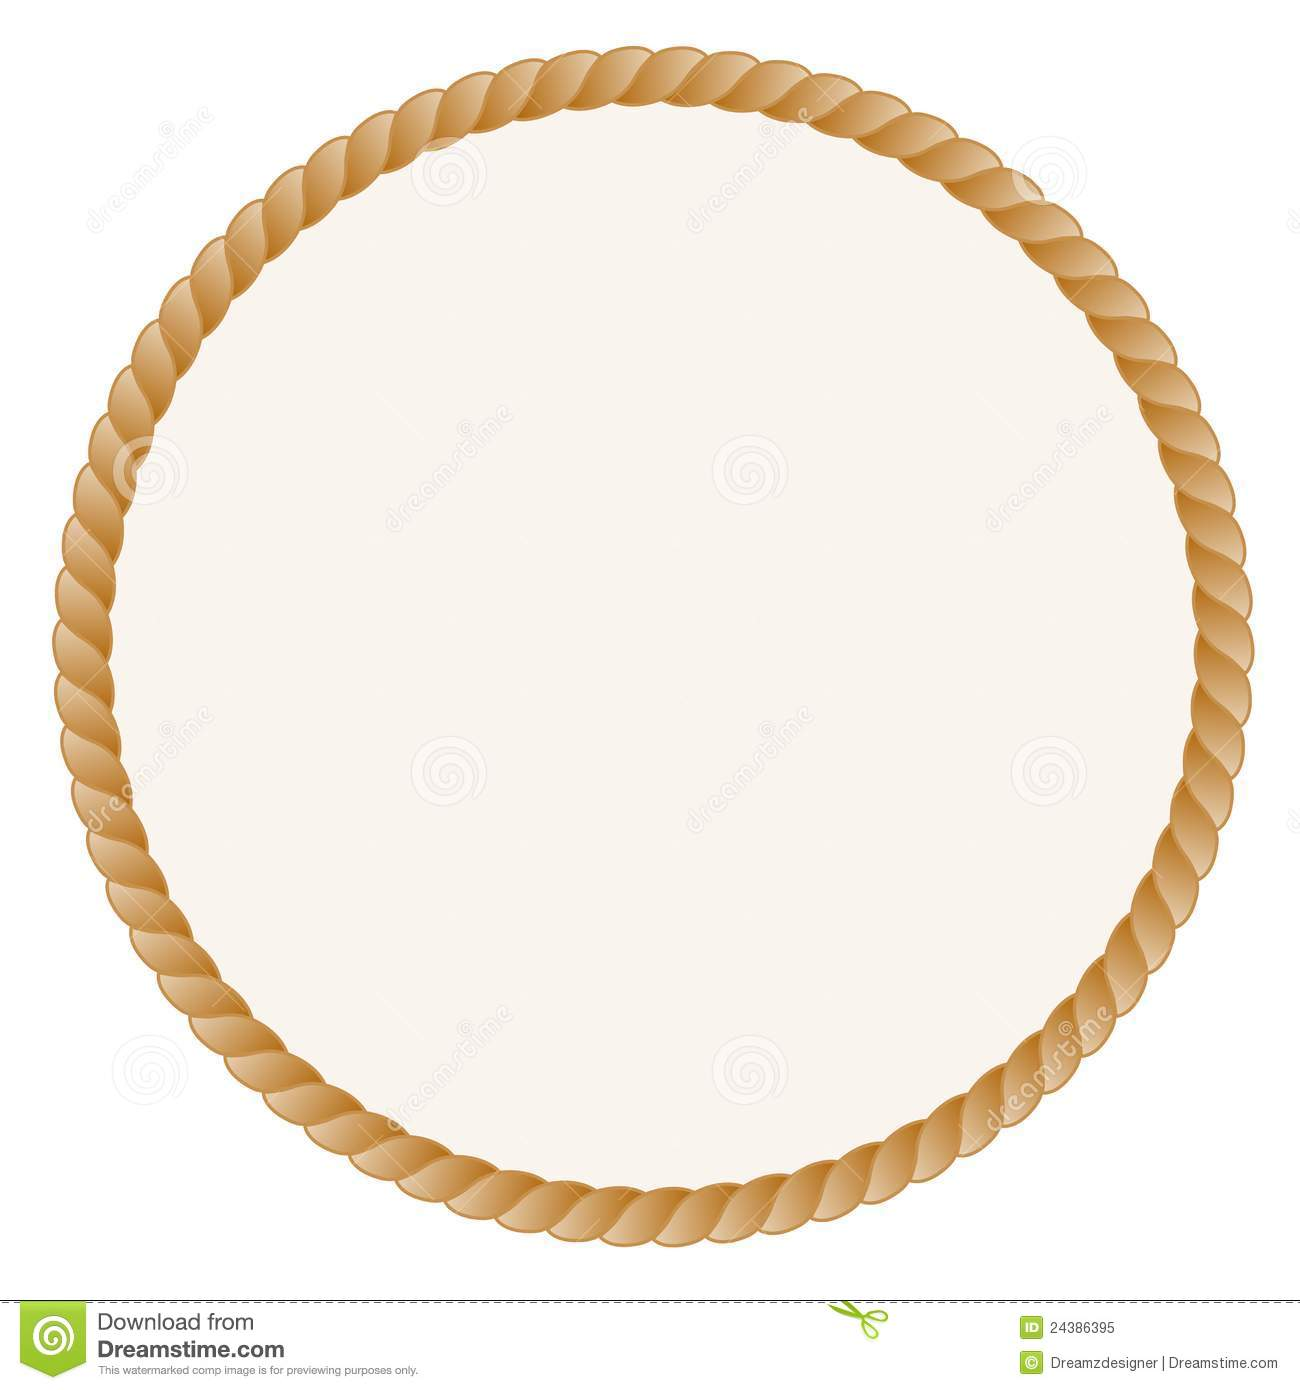 Round Frame with Rope Border